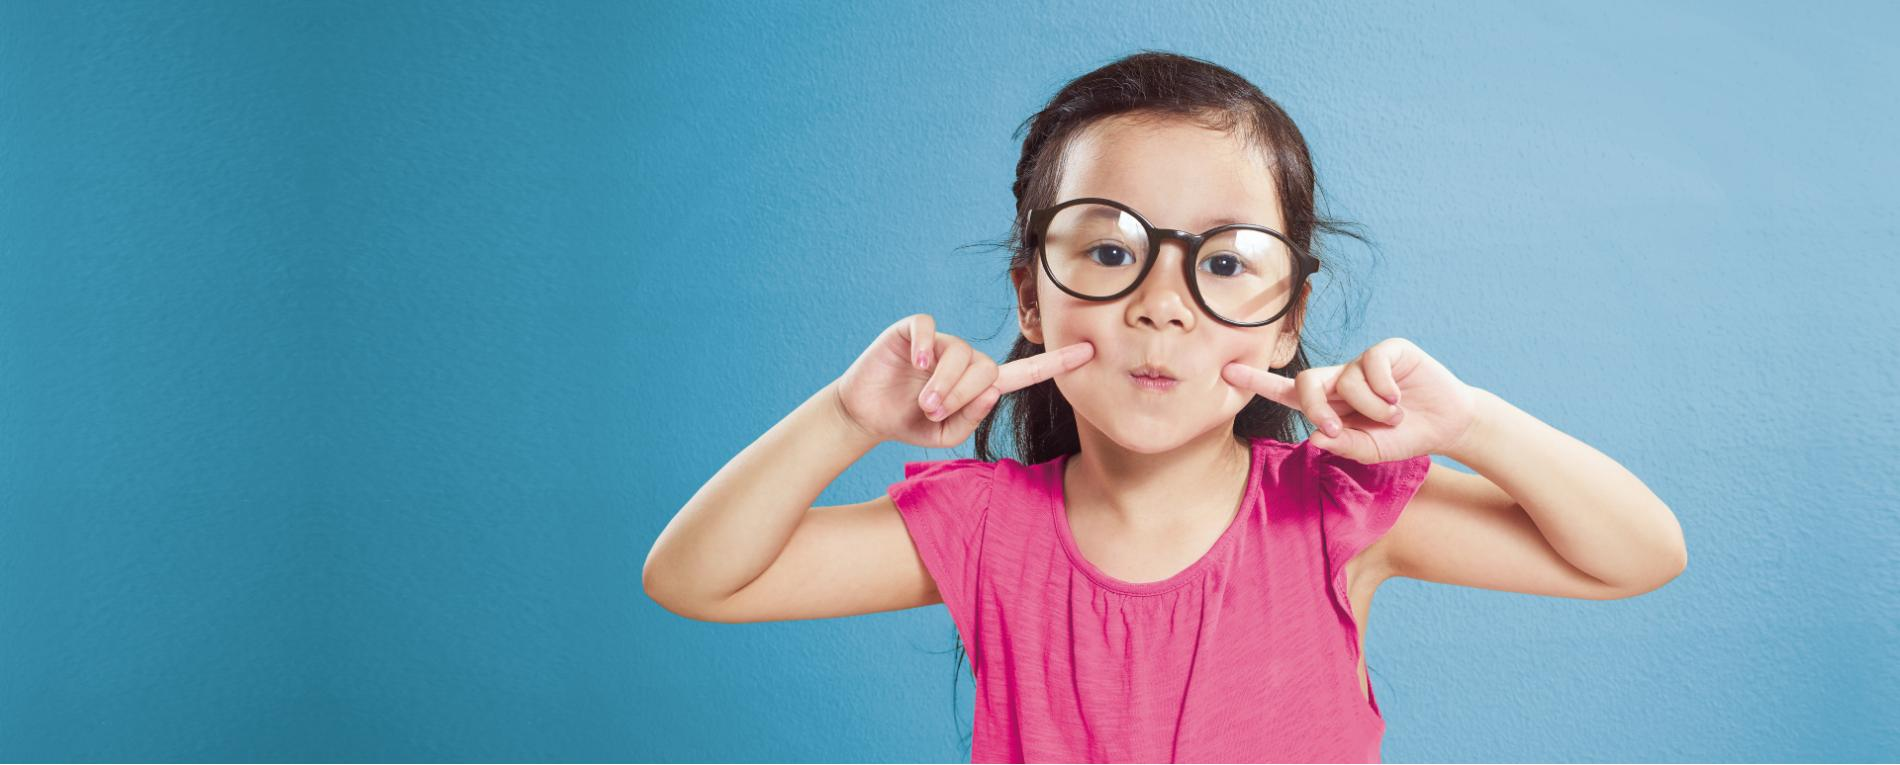 girl with glasses making faces